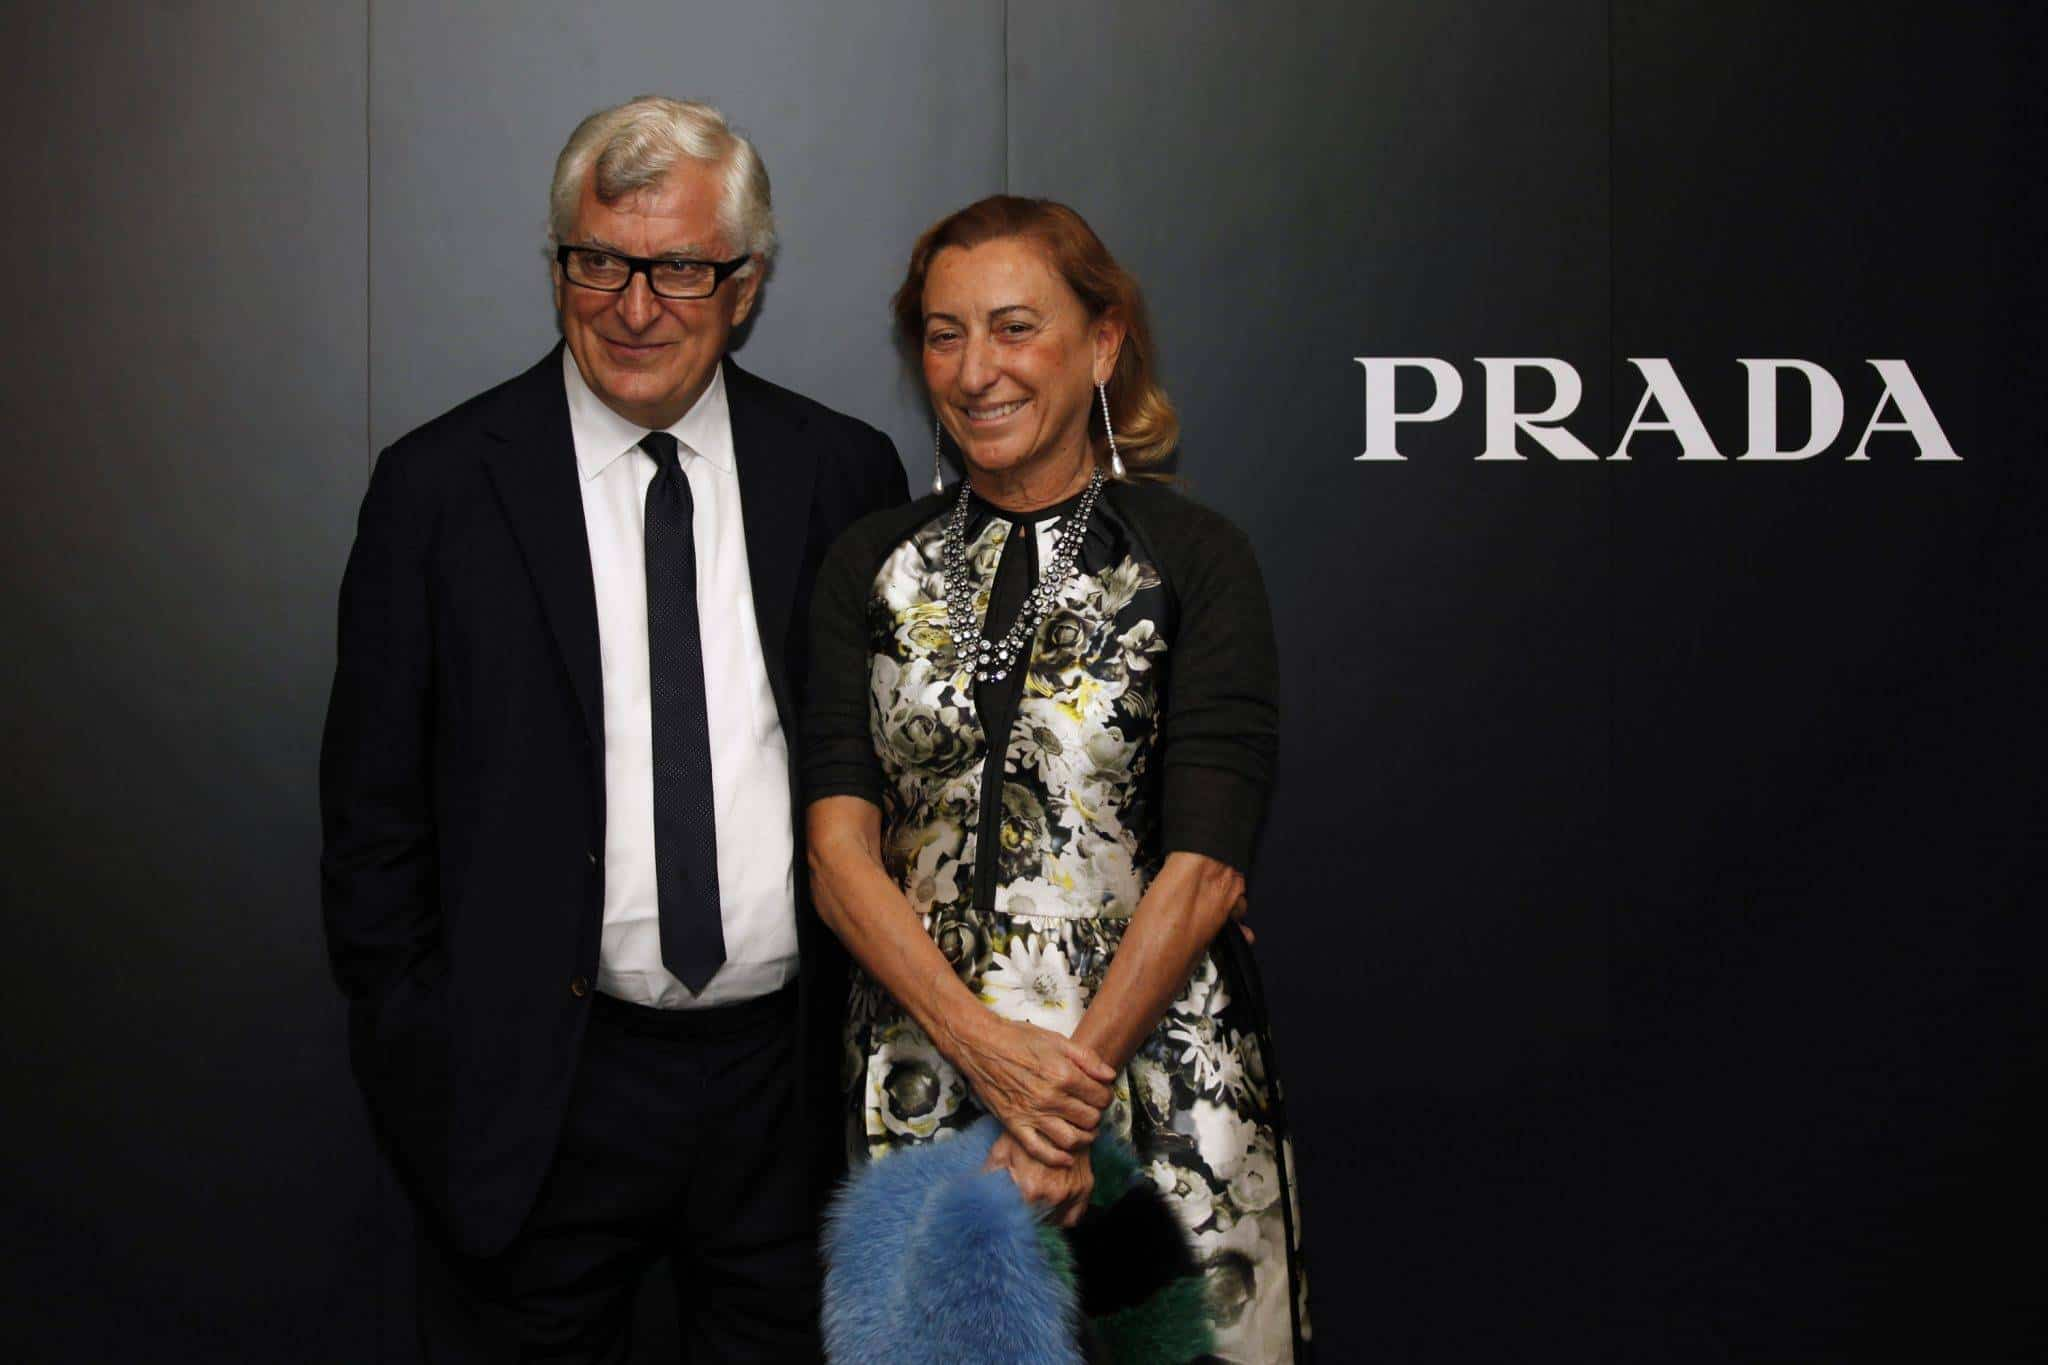 Prada's Powerhouse